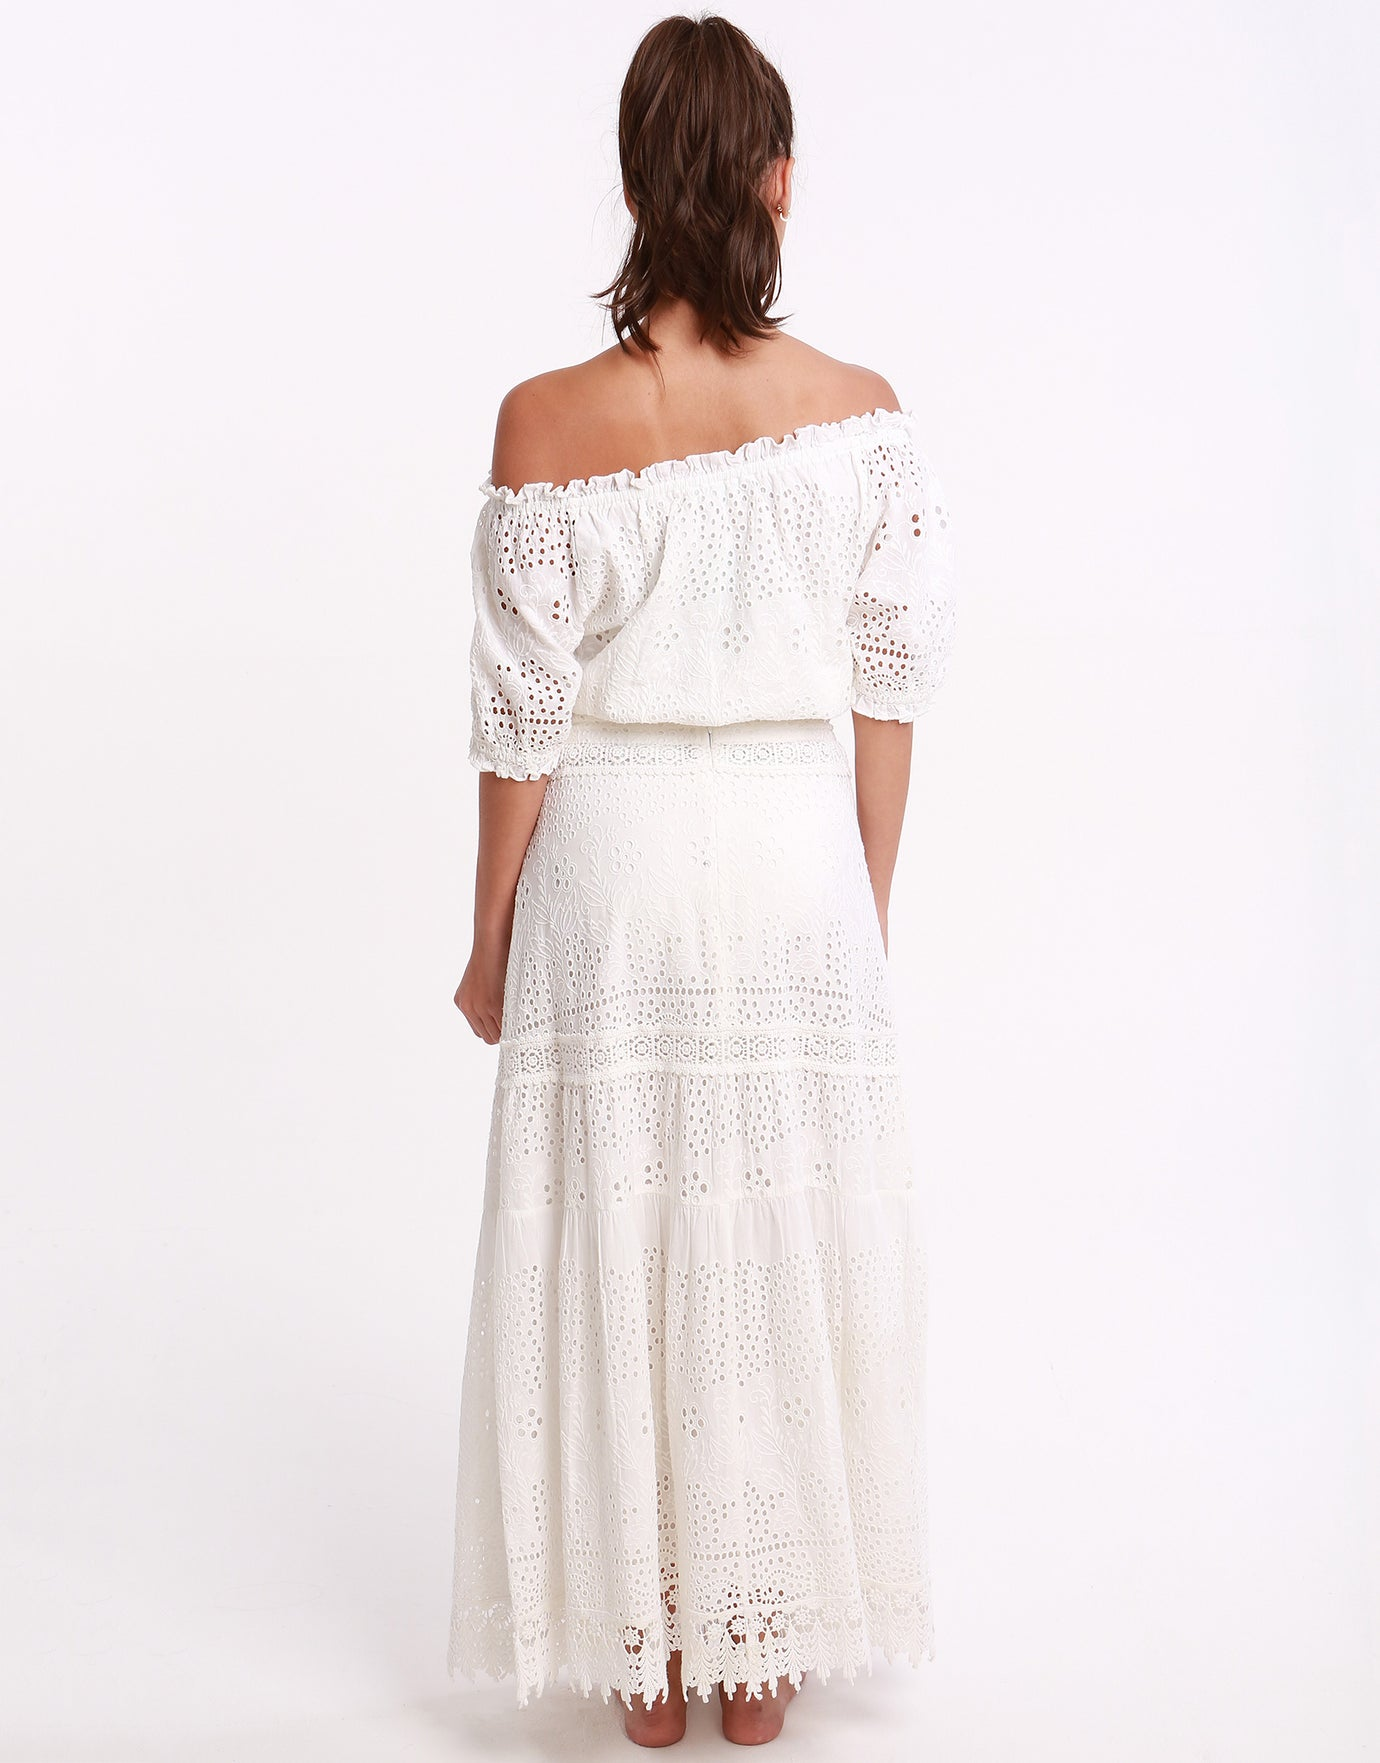 Melissa Odabash Francesca Off Shoulder Embroidered Frill Top - White